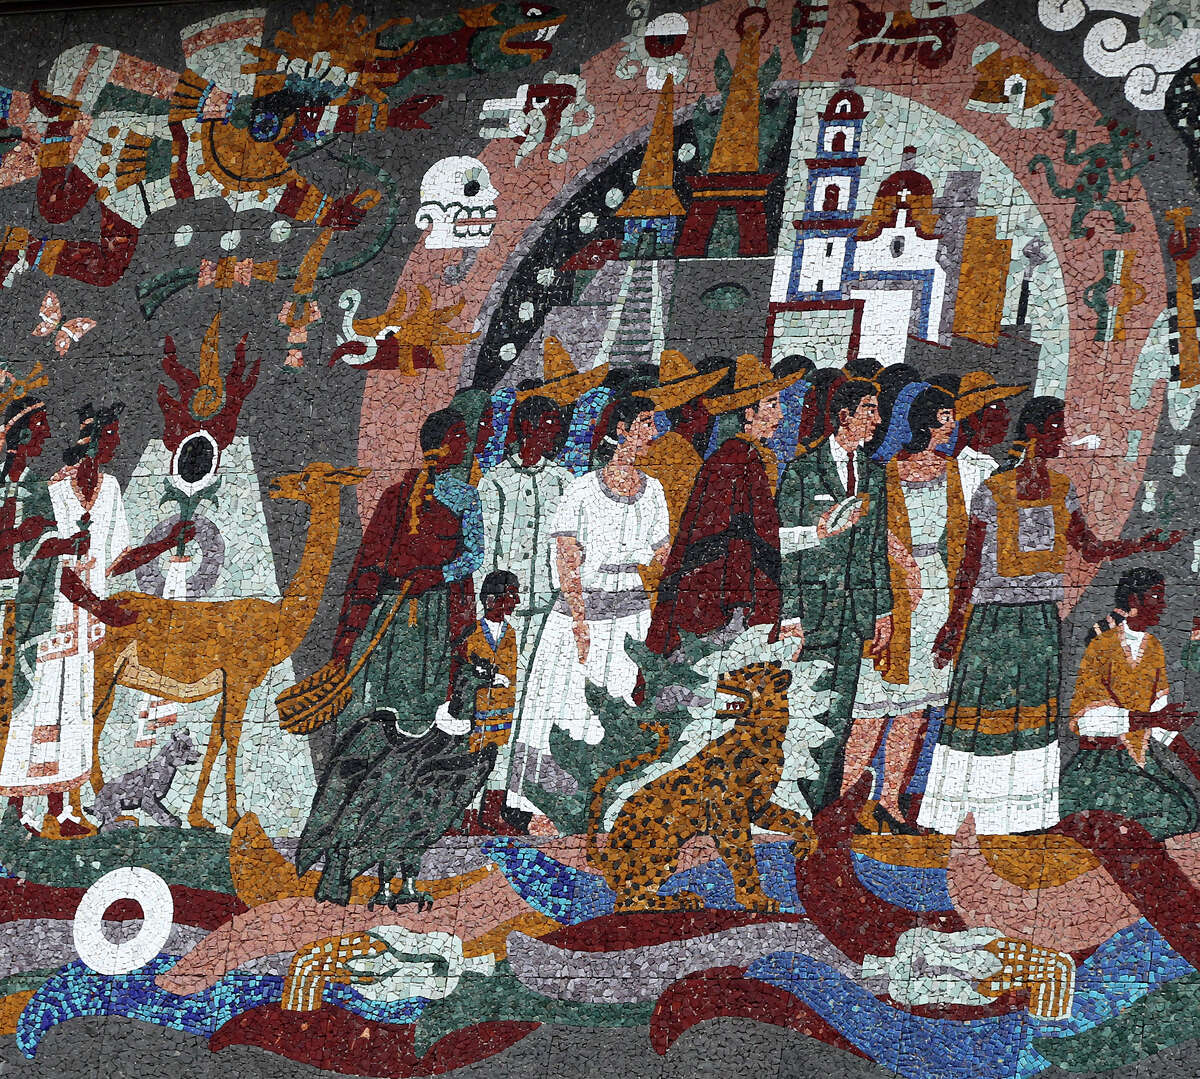 """This is a section of the """"Confluence of Civilization in the Americas"""" mural made of tile on the Henry B. Gonzalez Convention Center."""